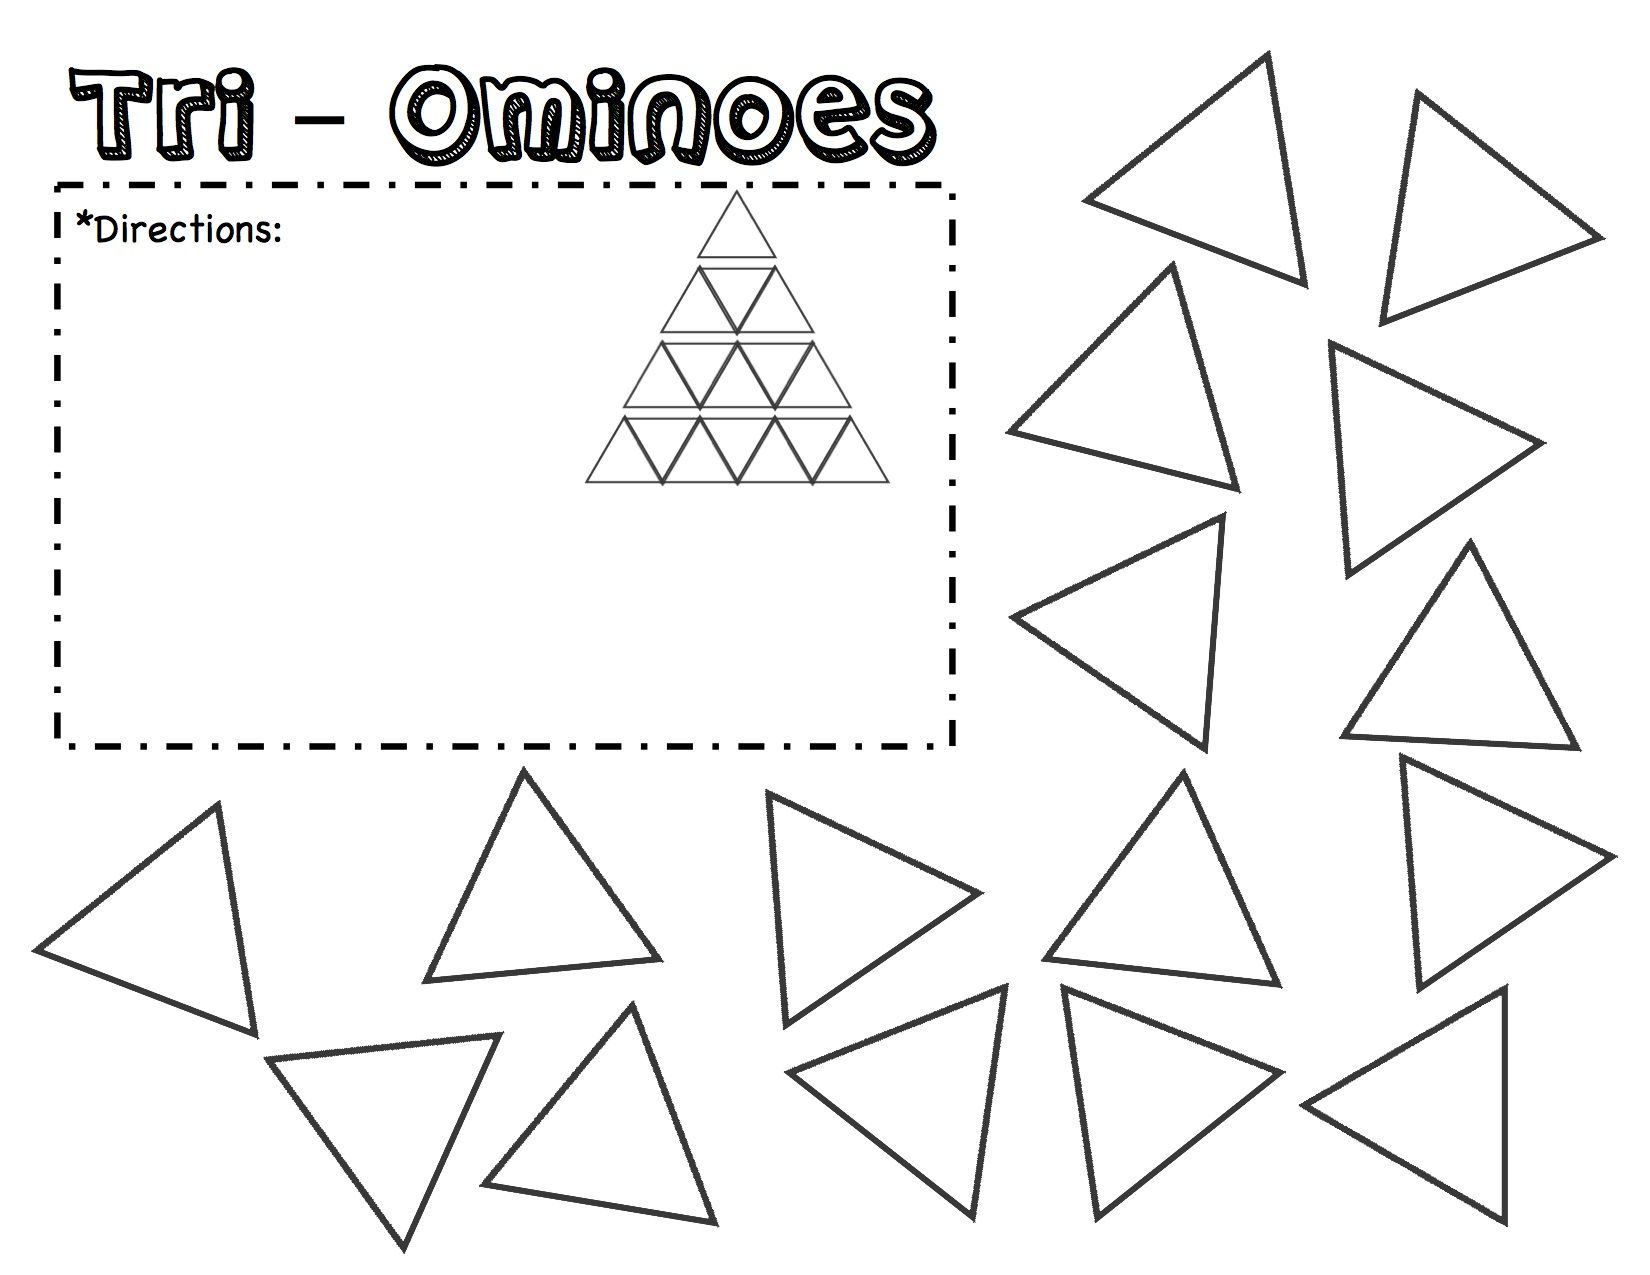 Tri Ominoes Puzzle Template Printable Fill In The Directions And Write In What You Want Them To Match Up Math Printable Math Worksheets Math Centers [ 1275 x 1650 Pixel ]